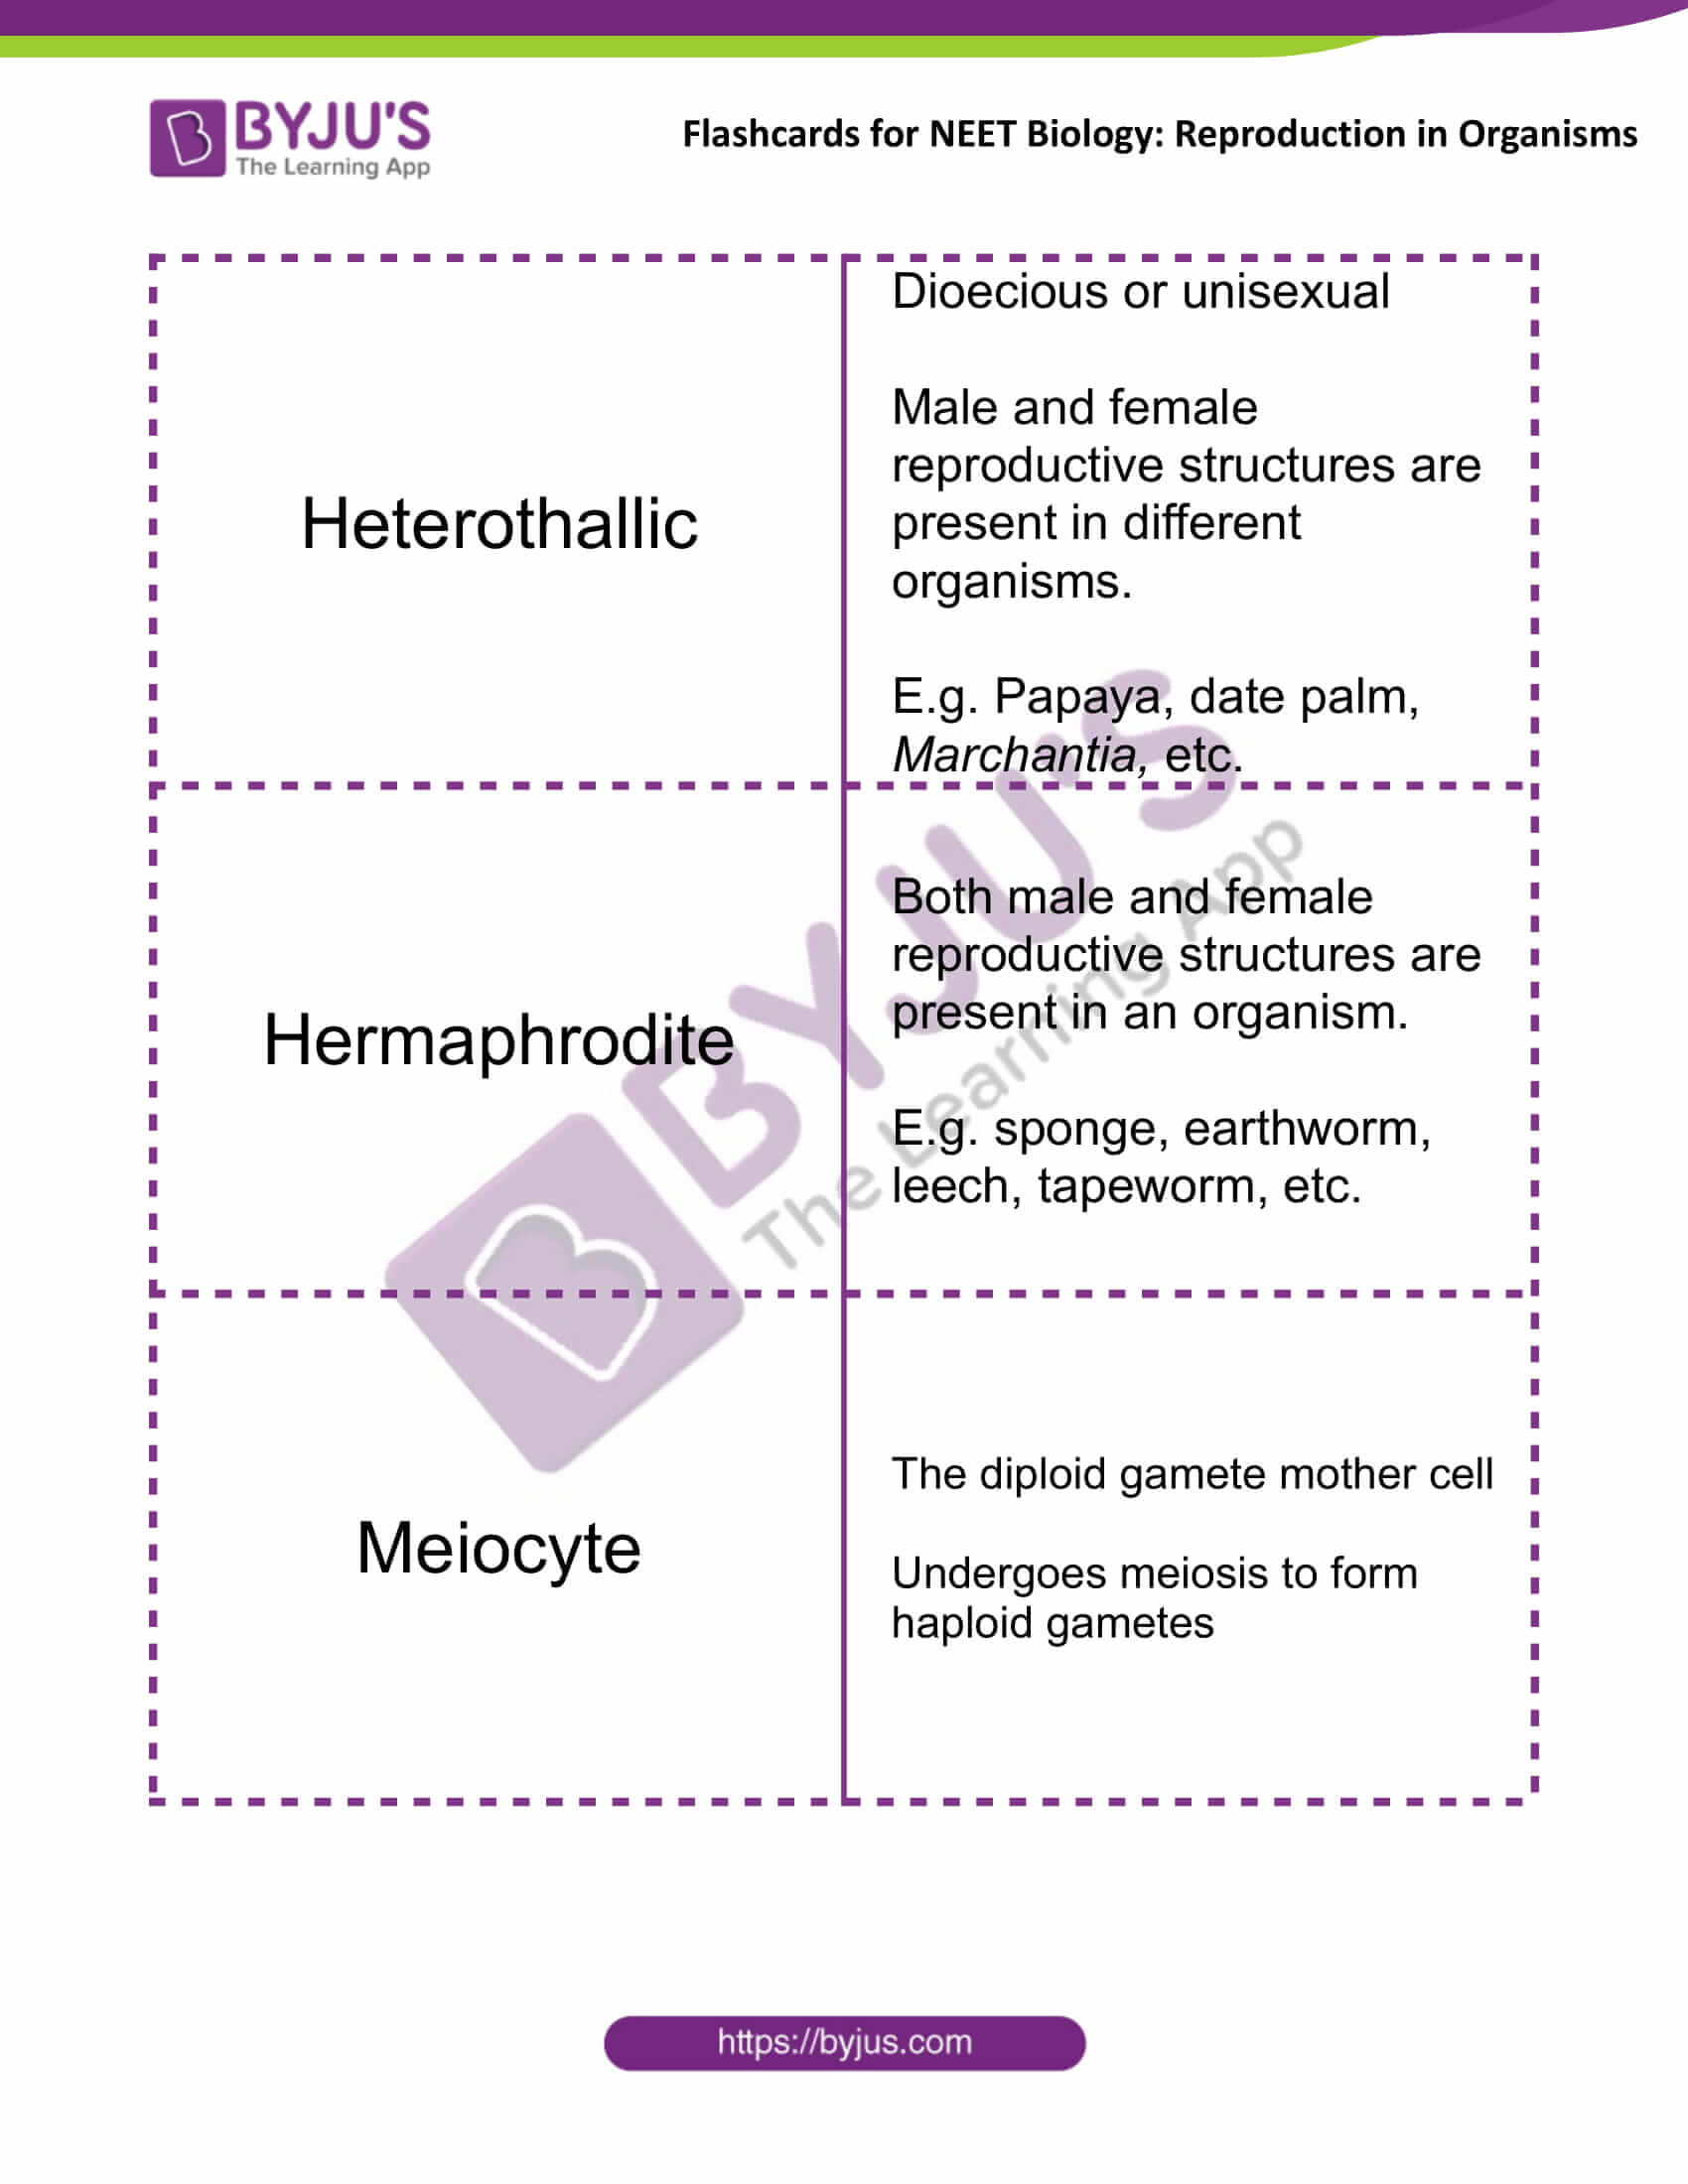 Flashcards for NEET Biology for Reproduction in Organisms 6